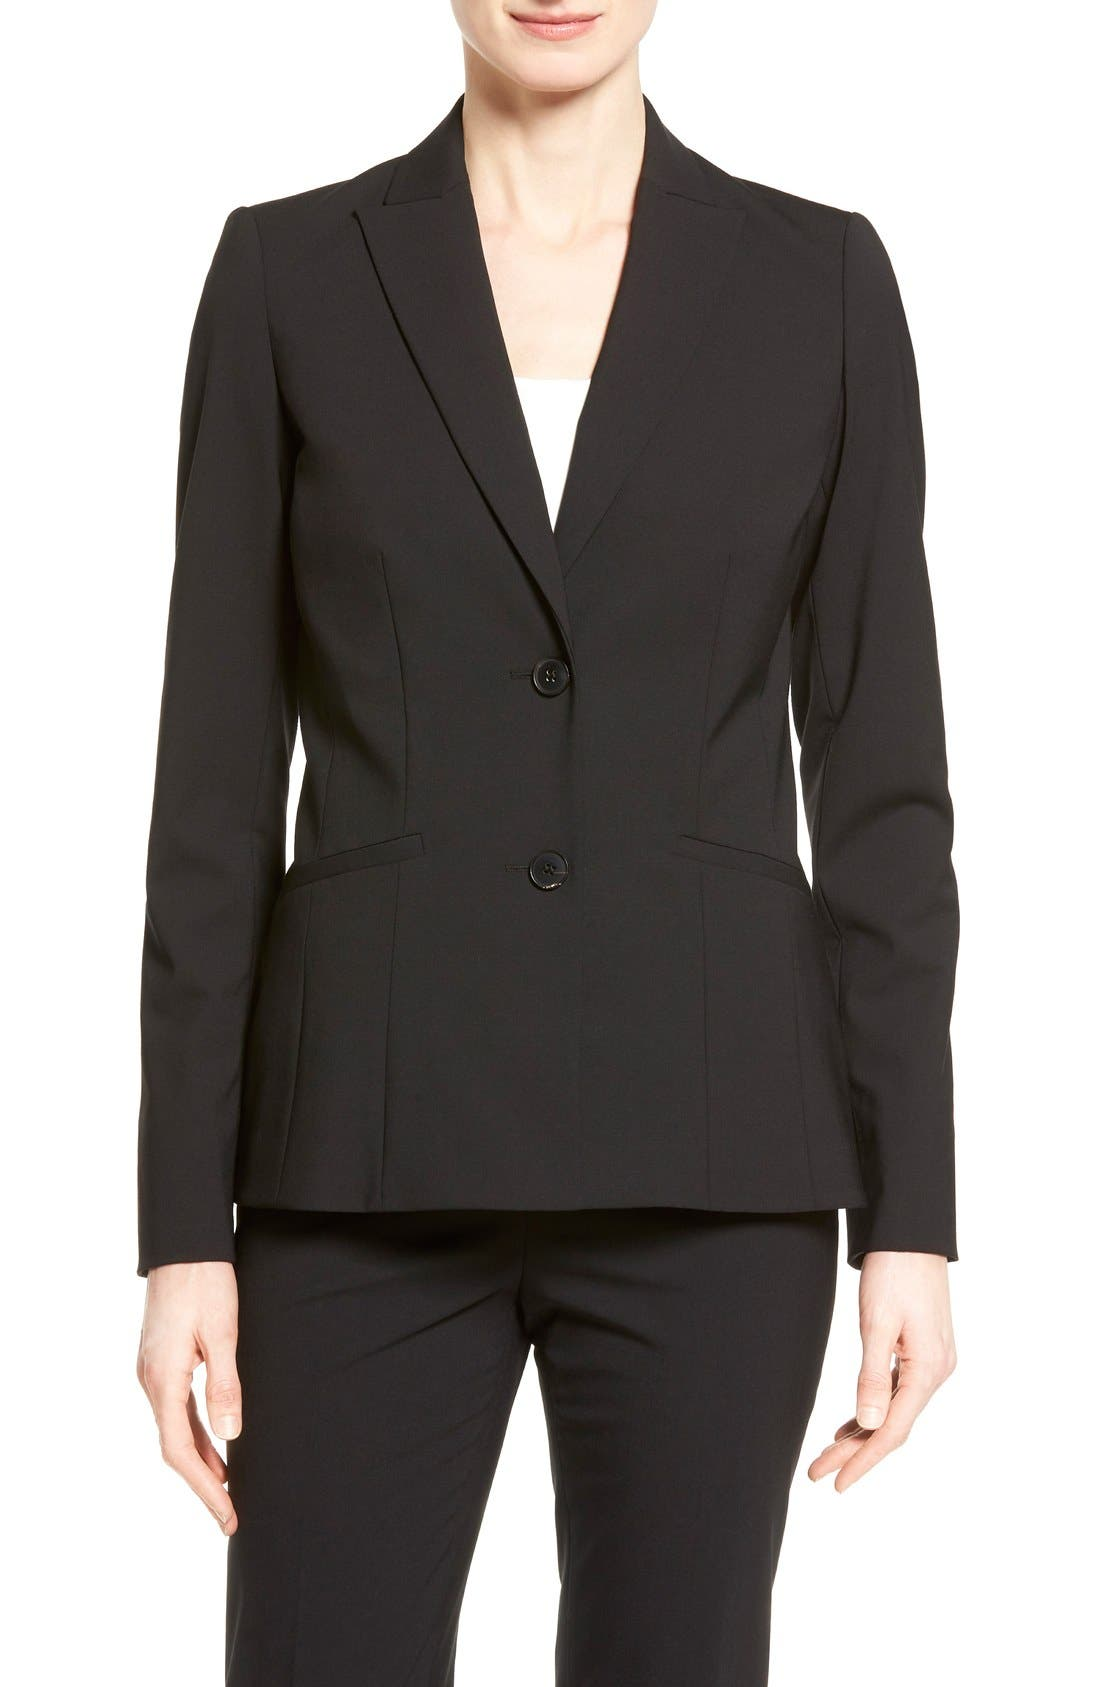 Lafayette 148 New York 'Rhonda' Stretch Wool Jacket